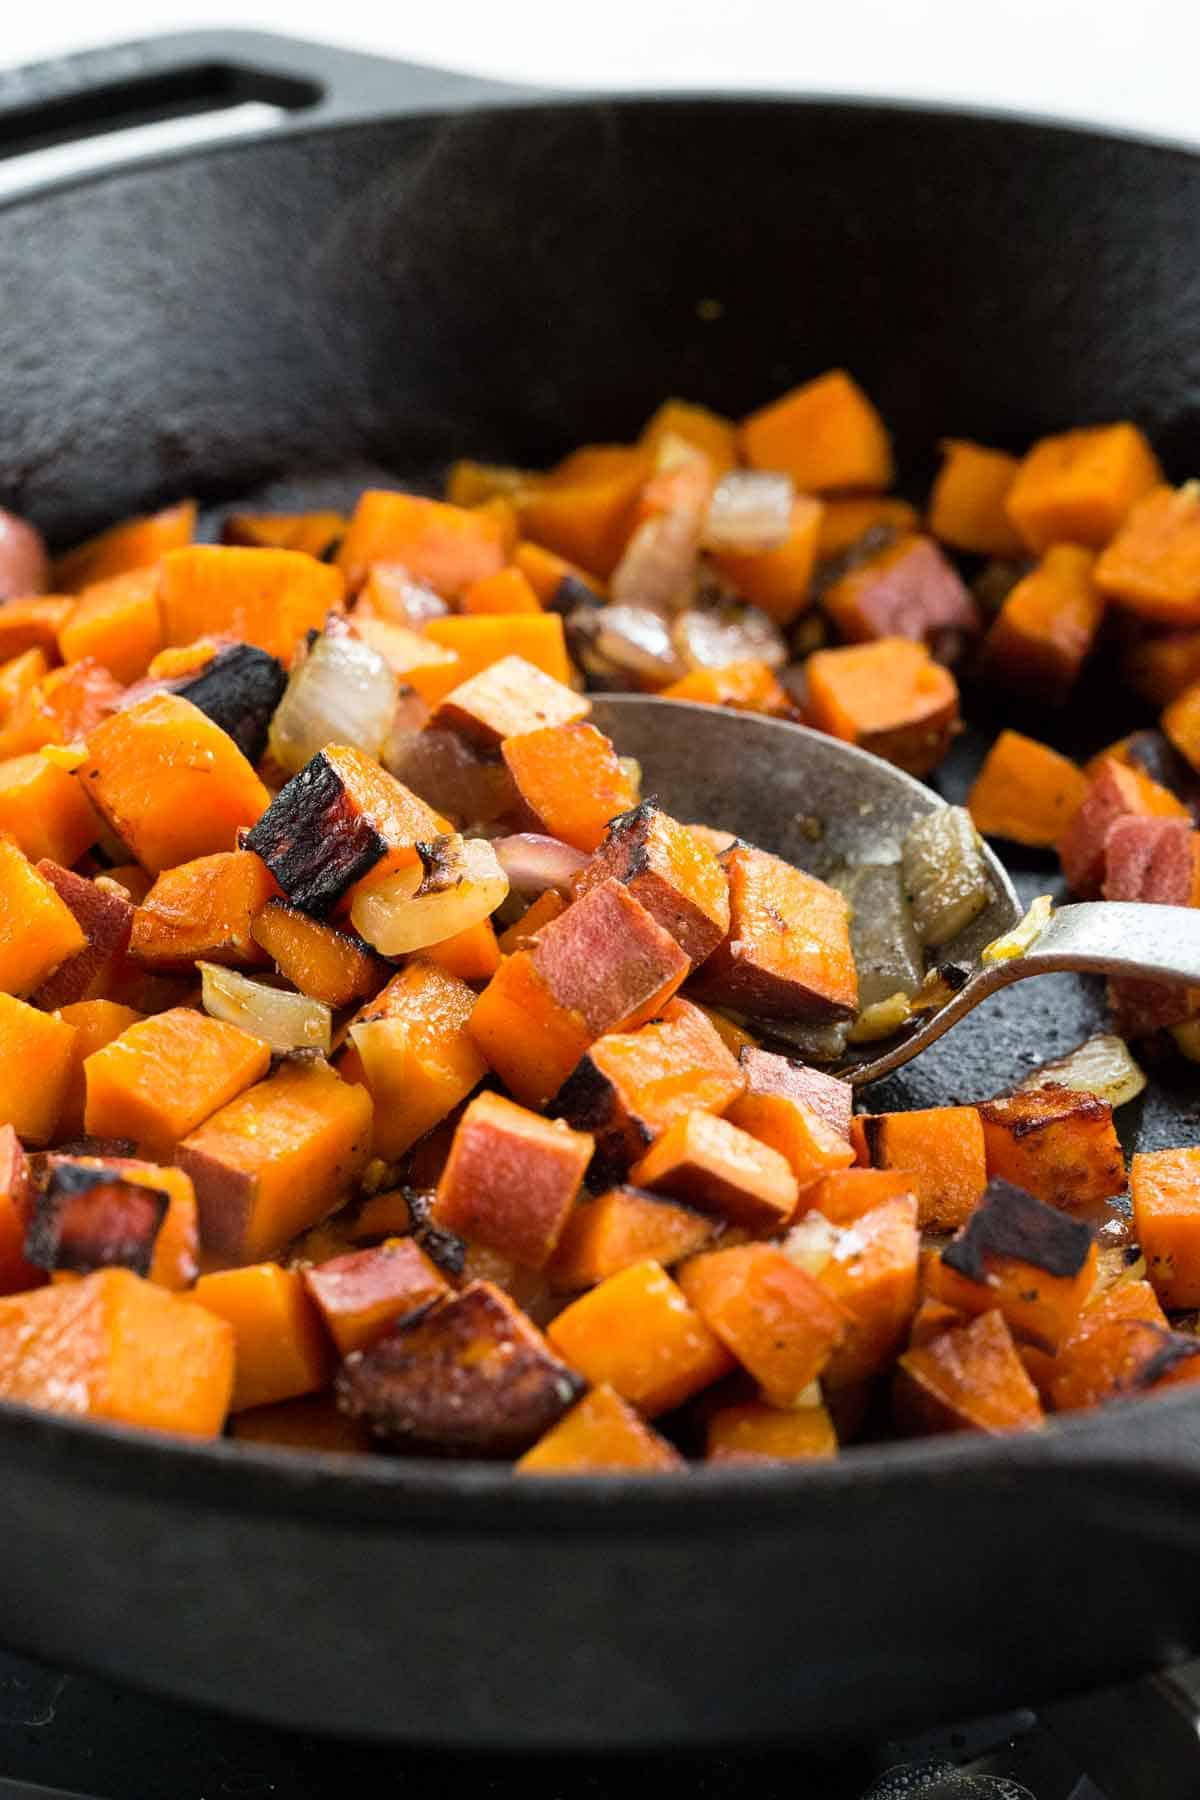 Metal spoon mixing diced sweet potato in a cast iron pan